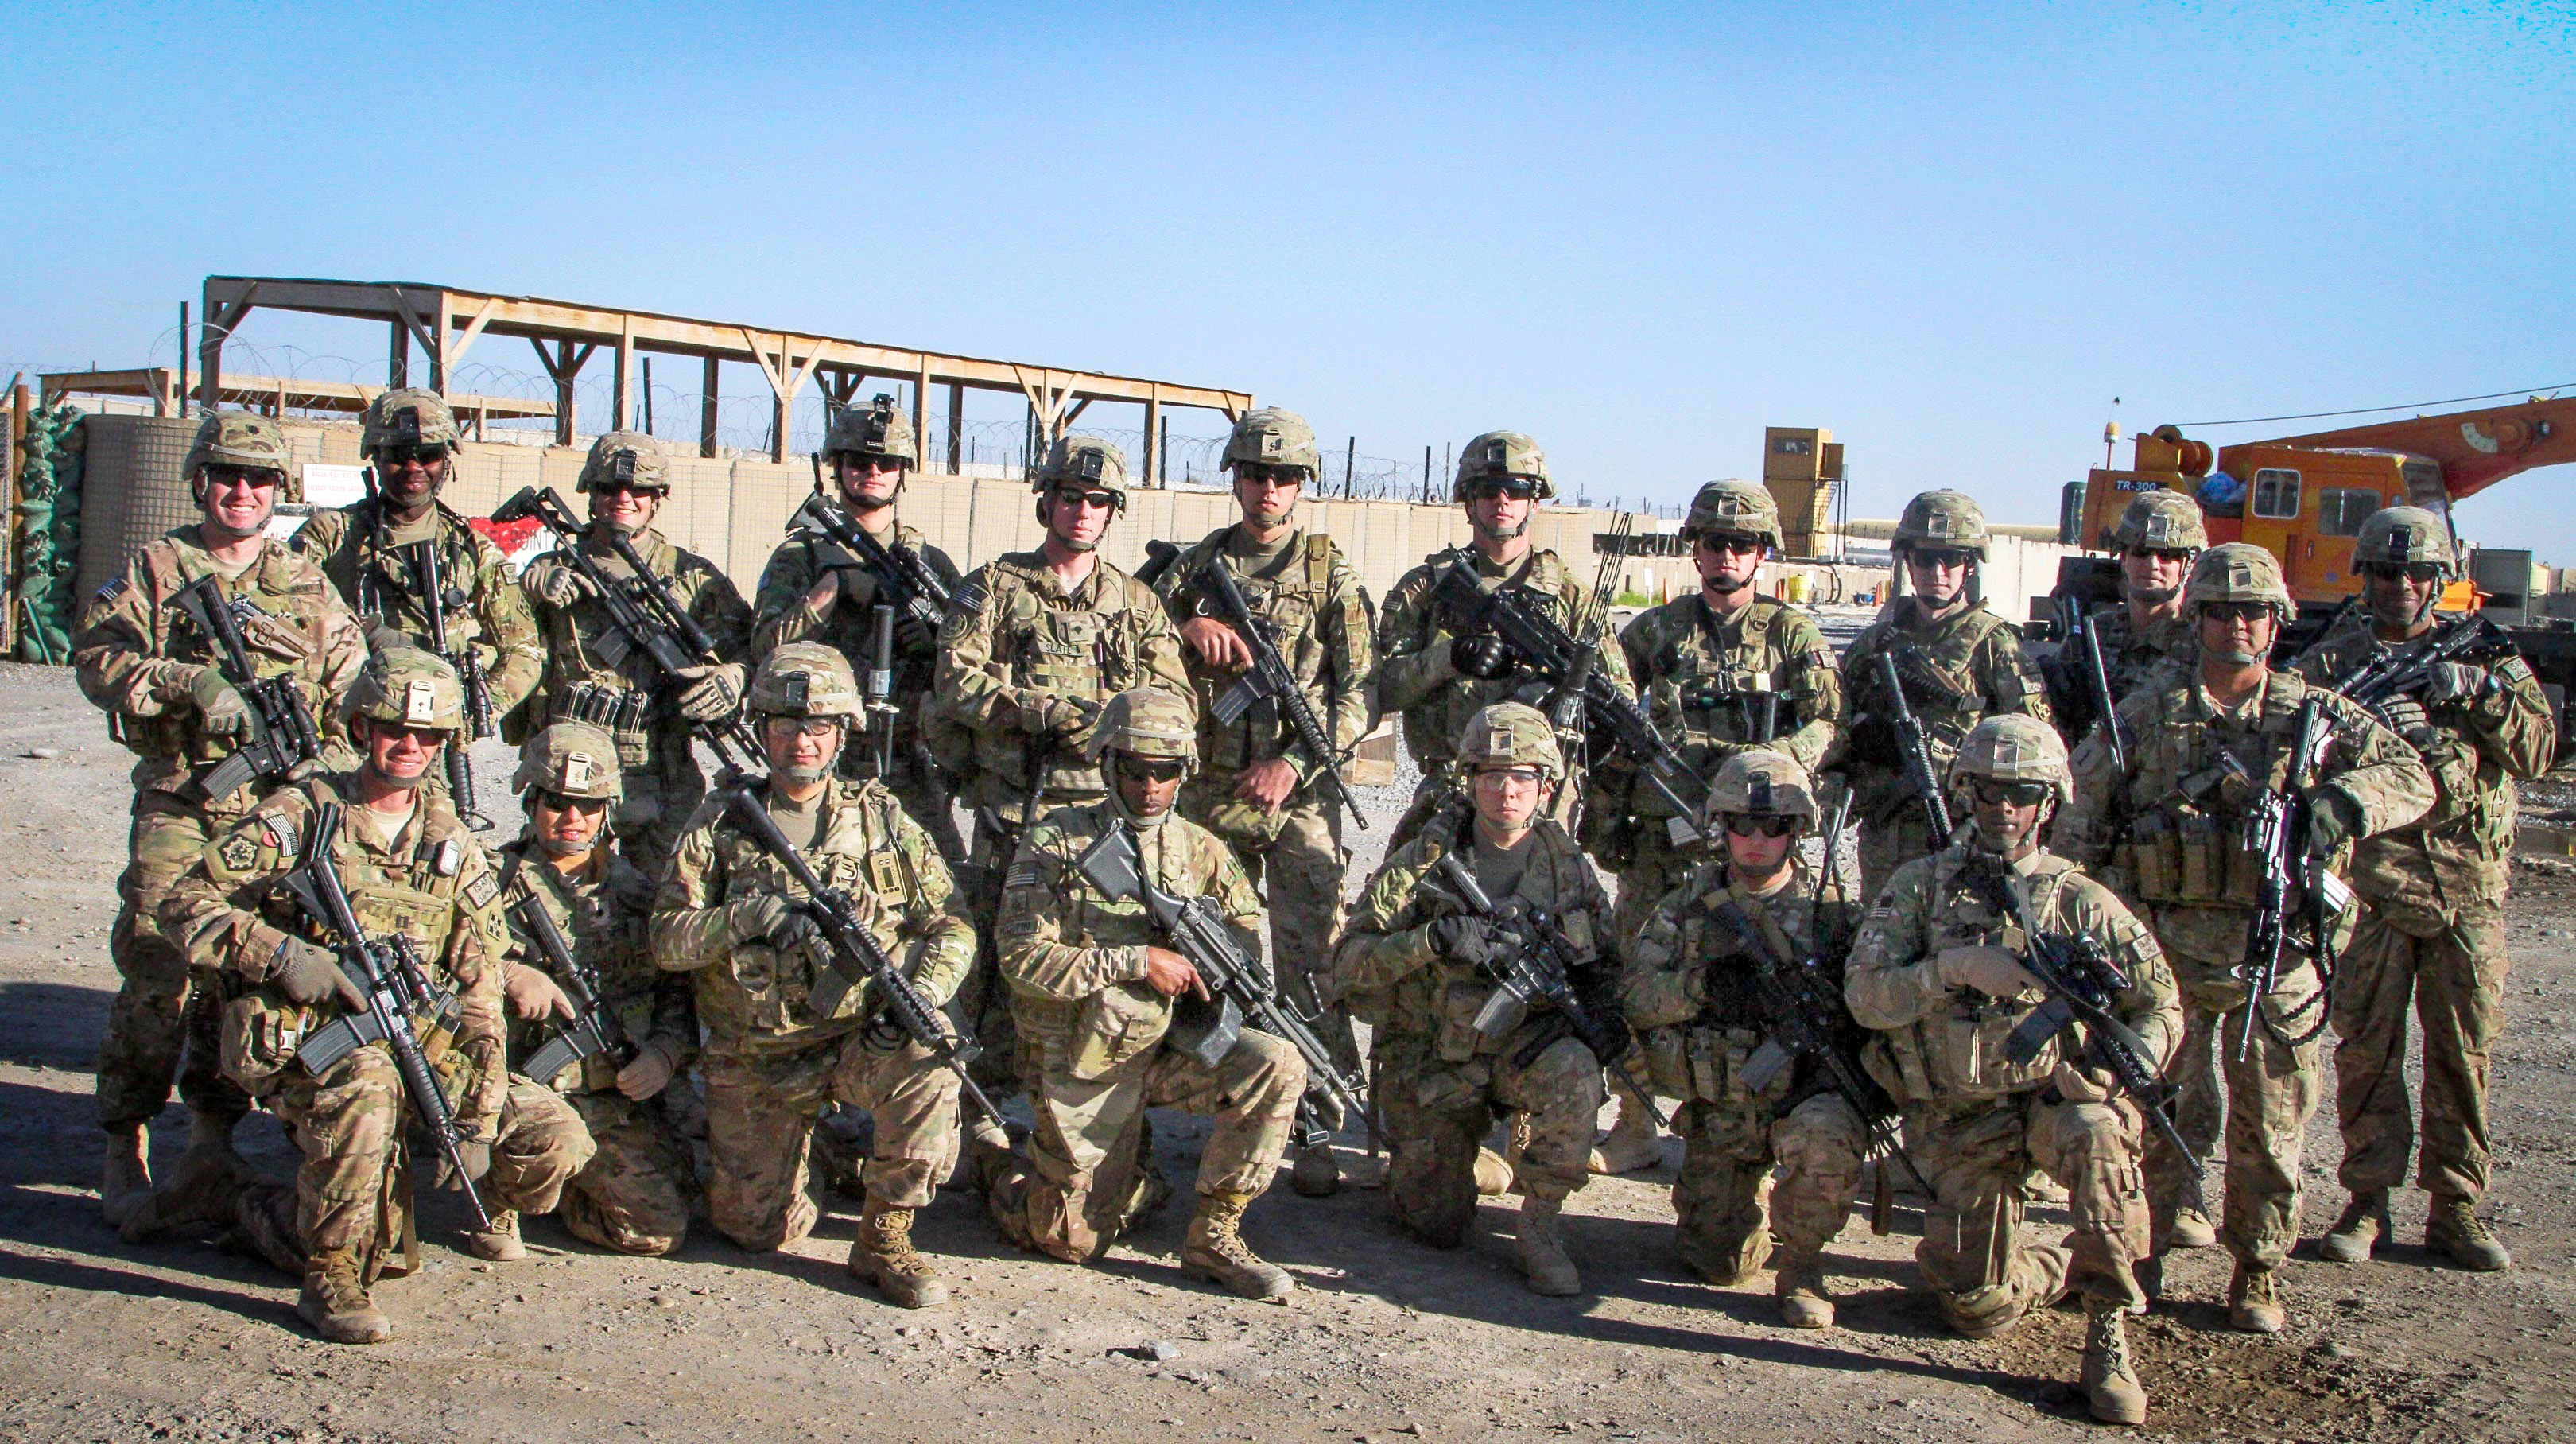 The Soldiers Assigned To Forward Support Company 65th Engineer Battalion Had Just Completed